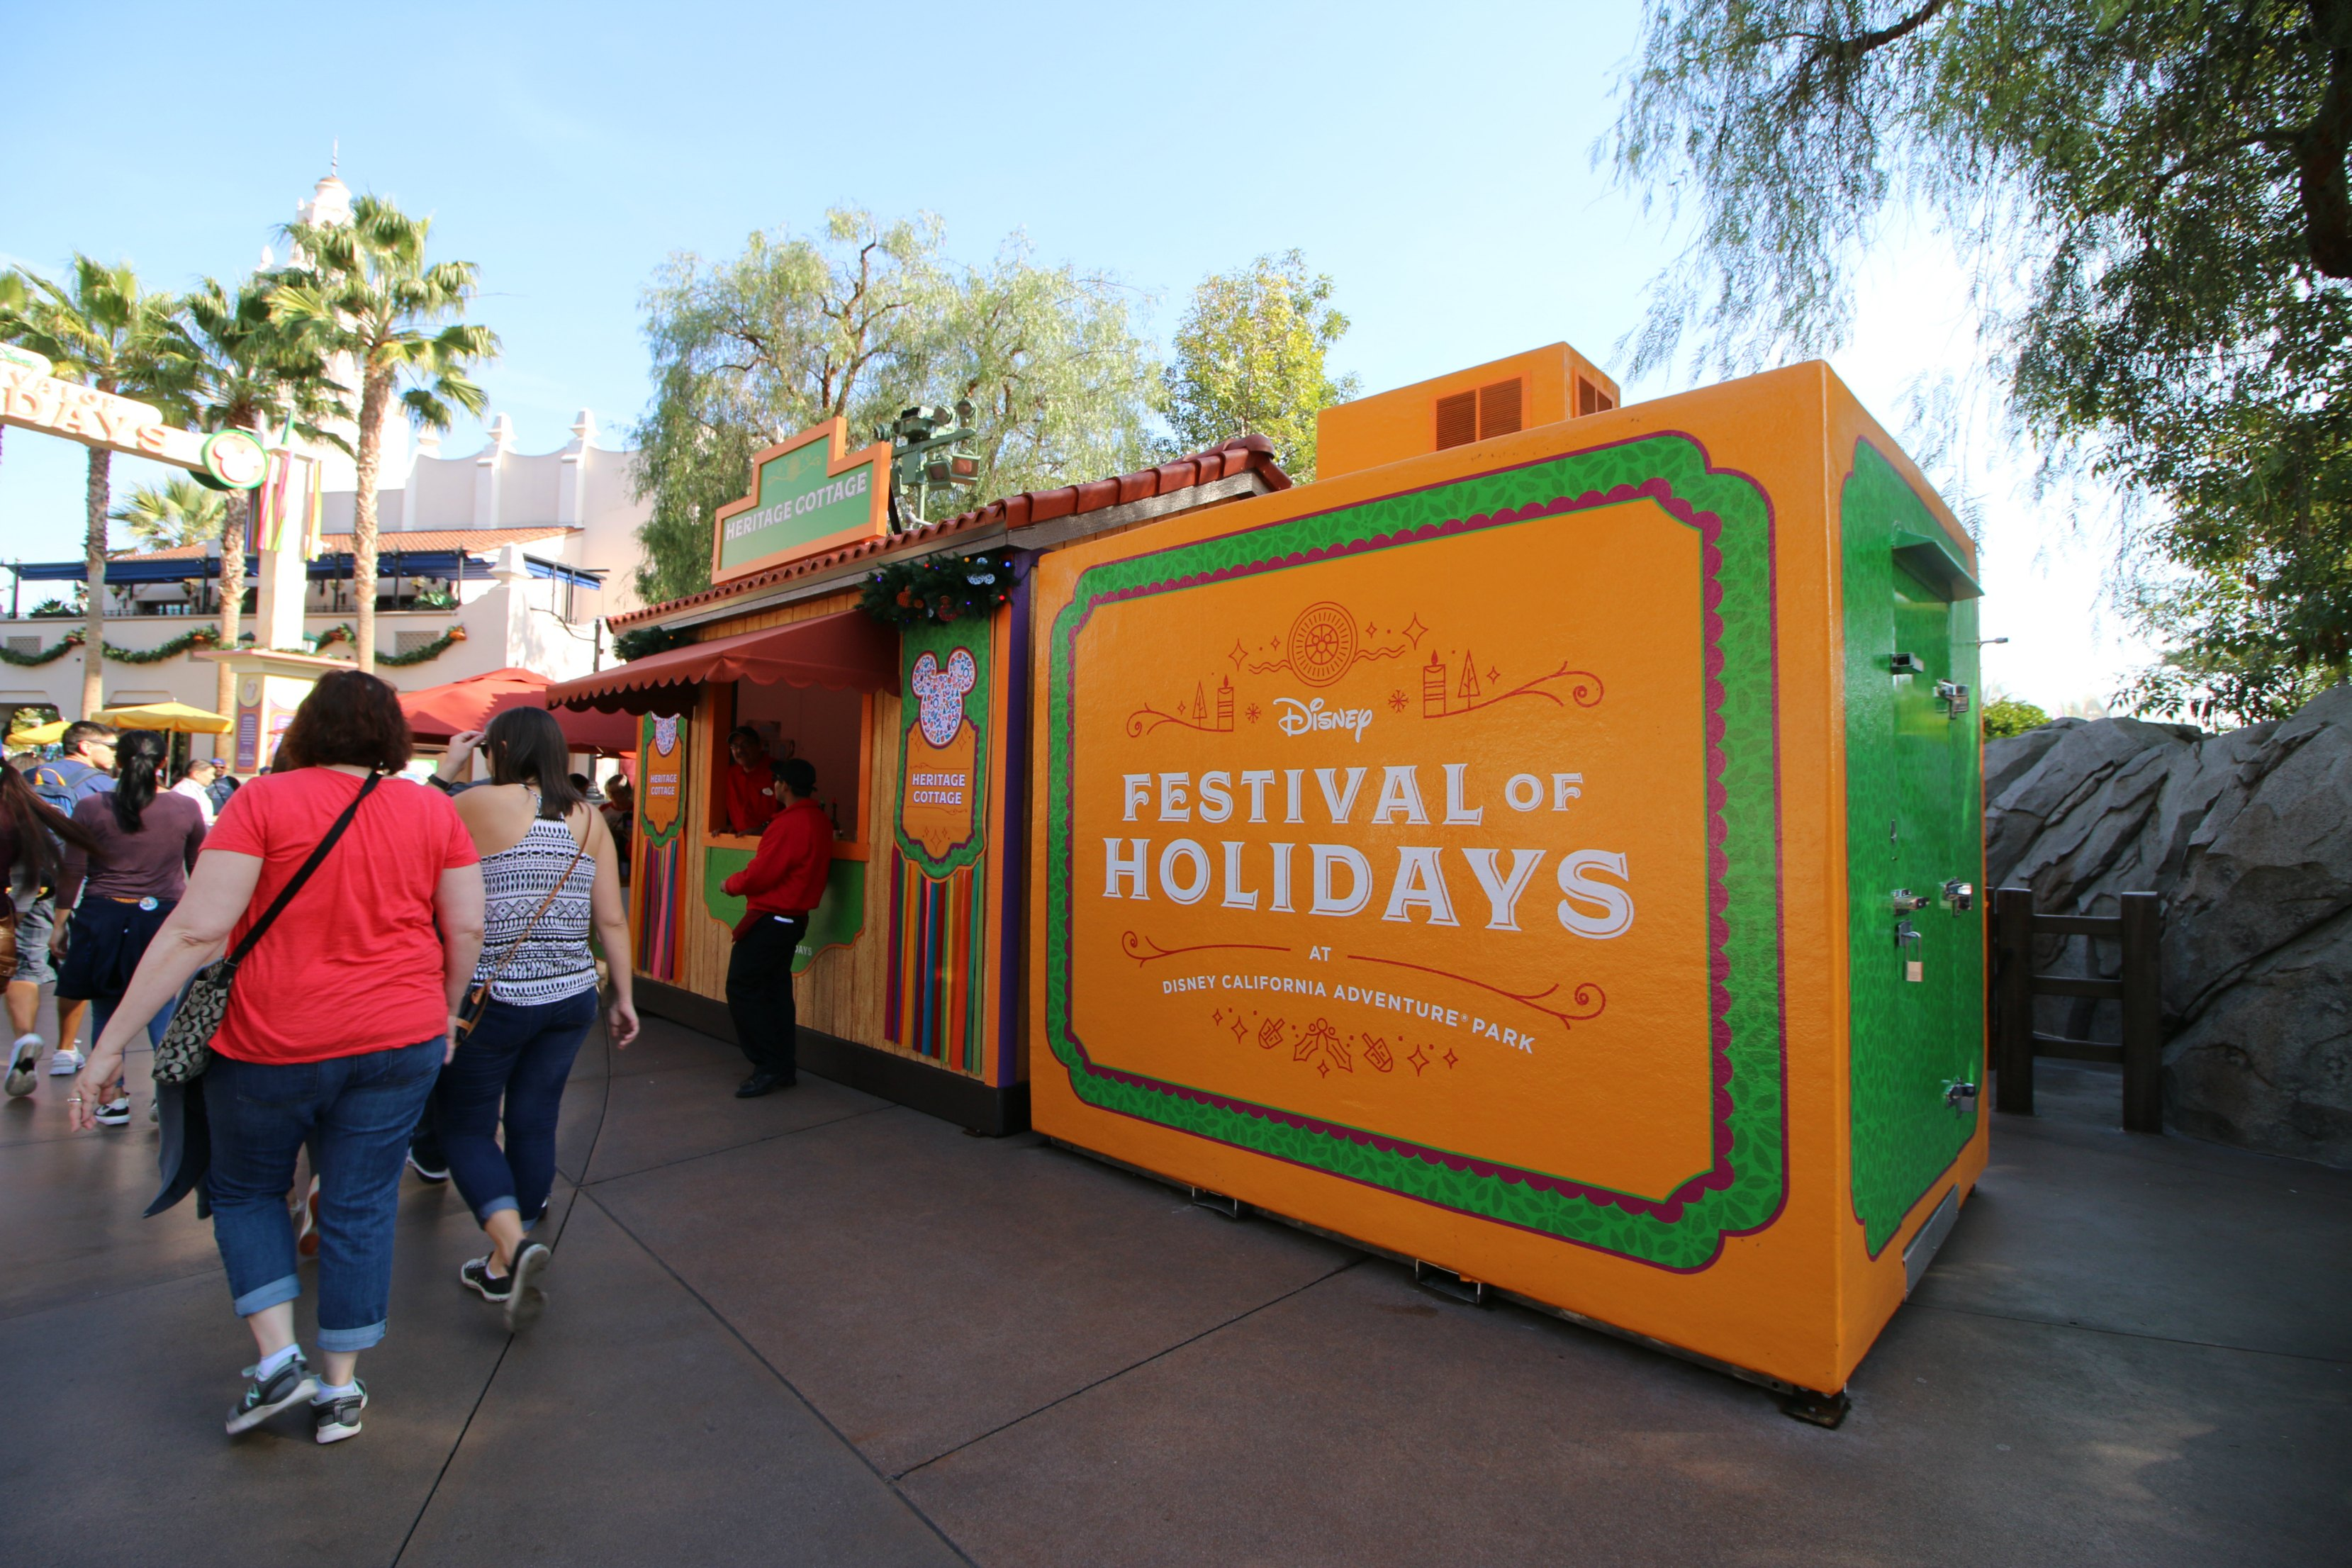 disney-festival-of-holidays-2016